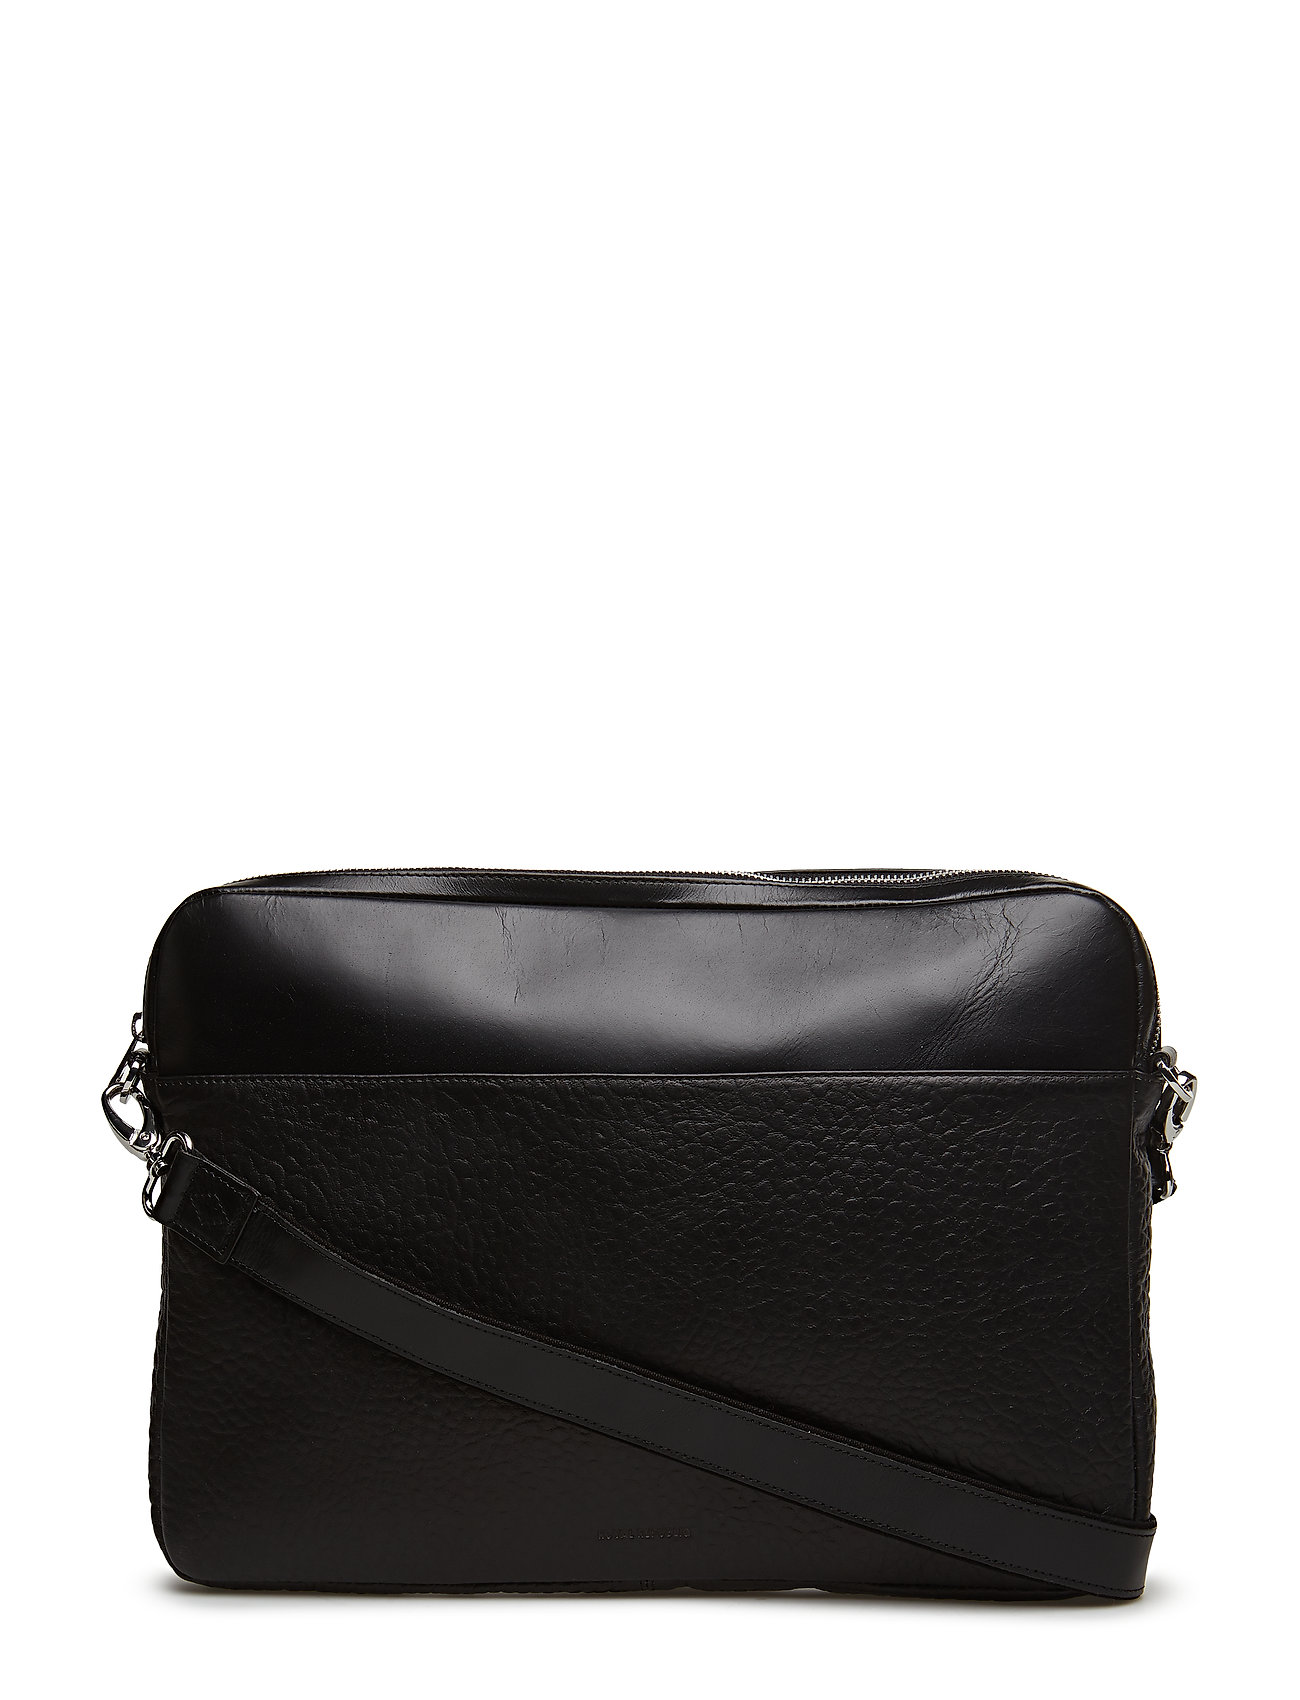 Royal RepubliQ Tenacity Laptop Bag - BLACK